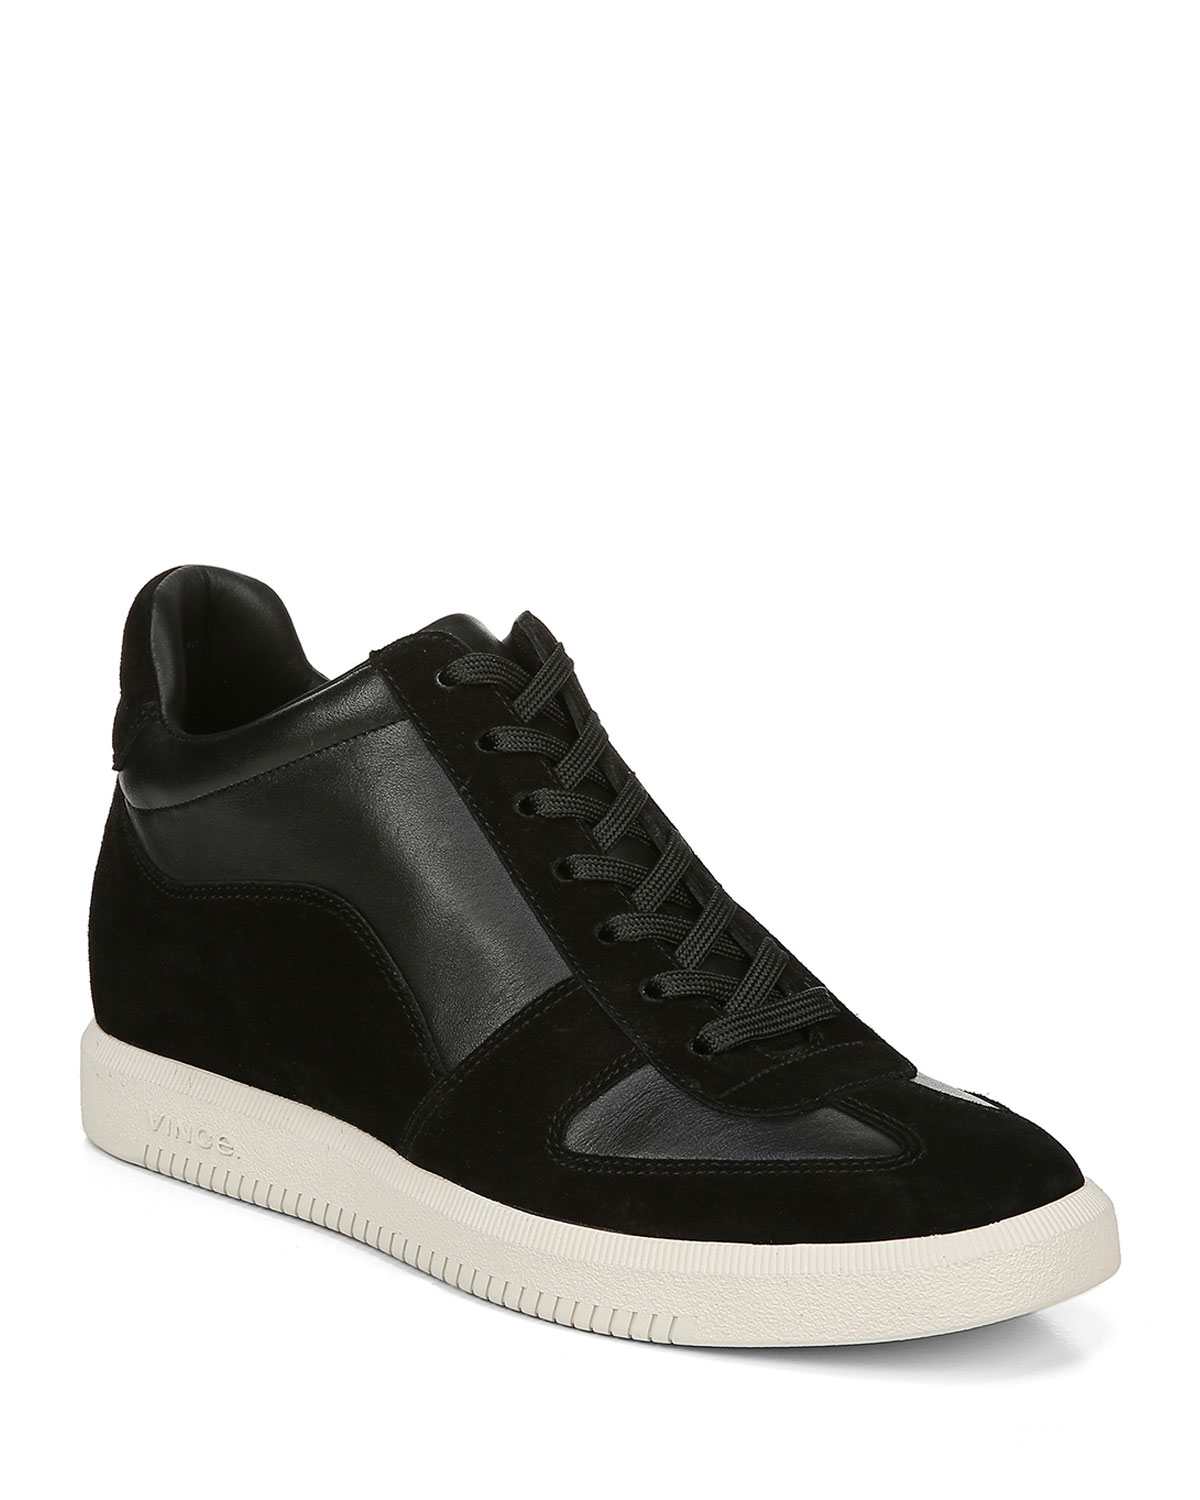 Vince Flats INA SUEDE/LUX LEATHER FLATFORM SNEAKERS